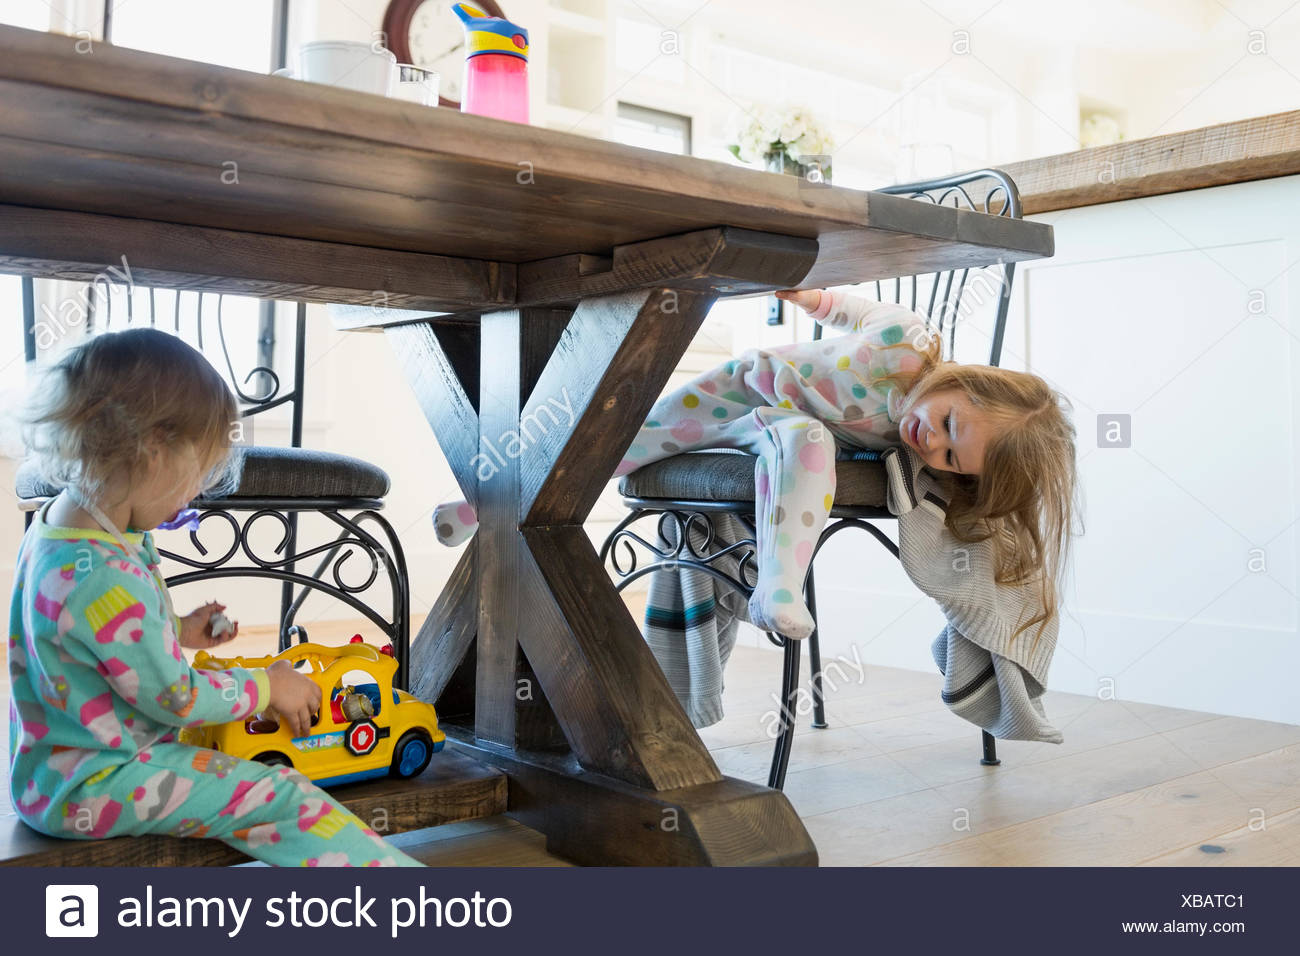 Girls in pajamas playing under dining table - Stock Image